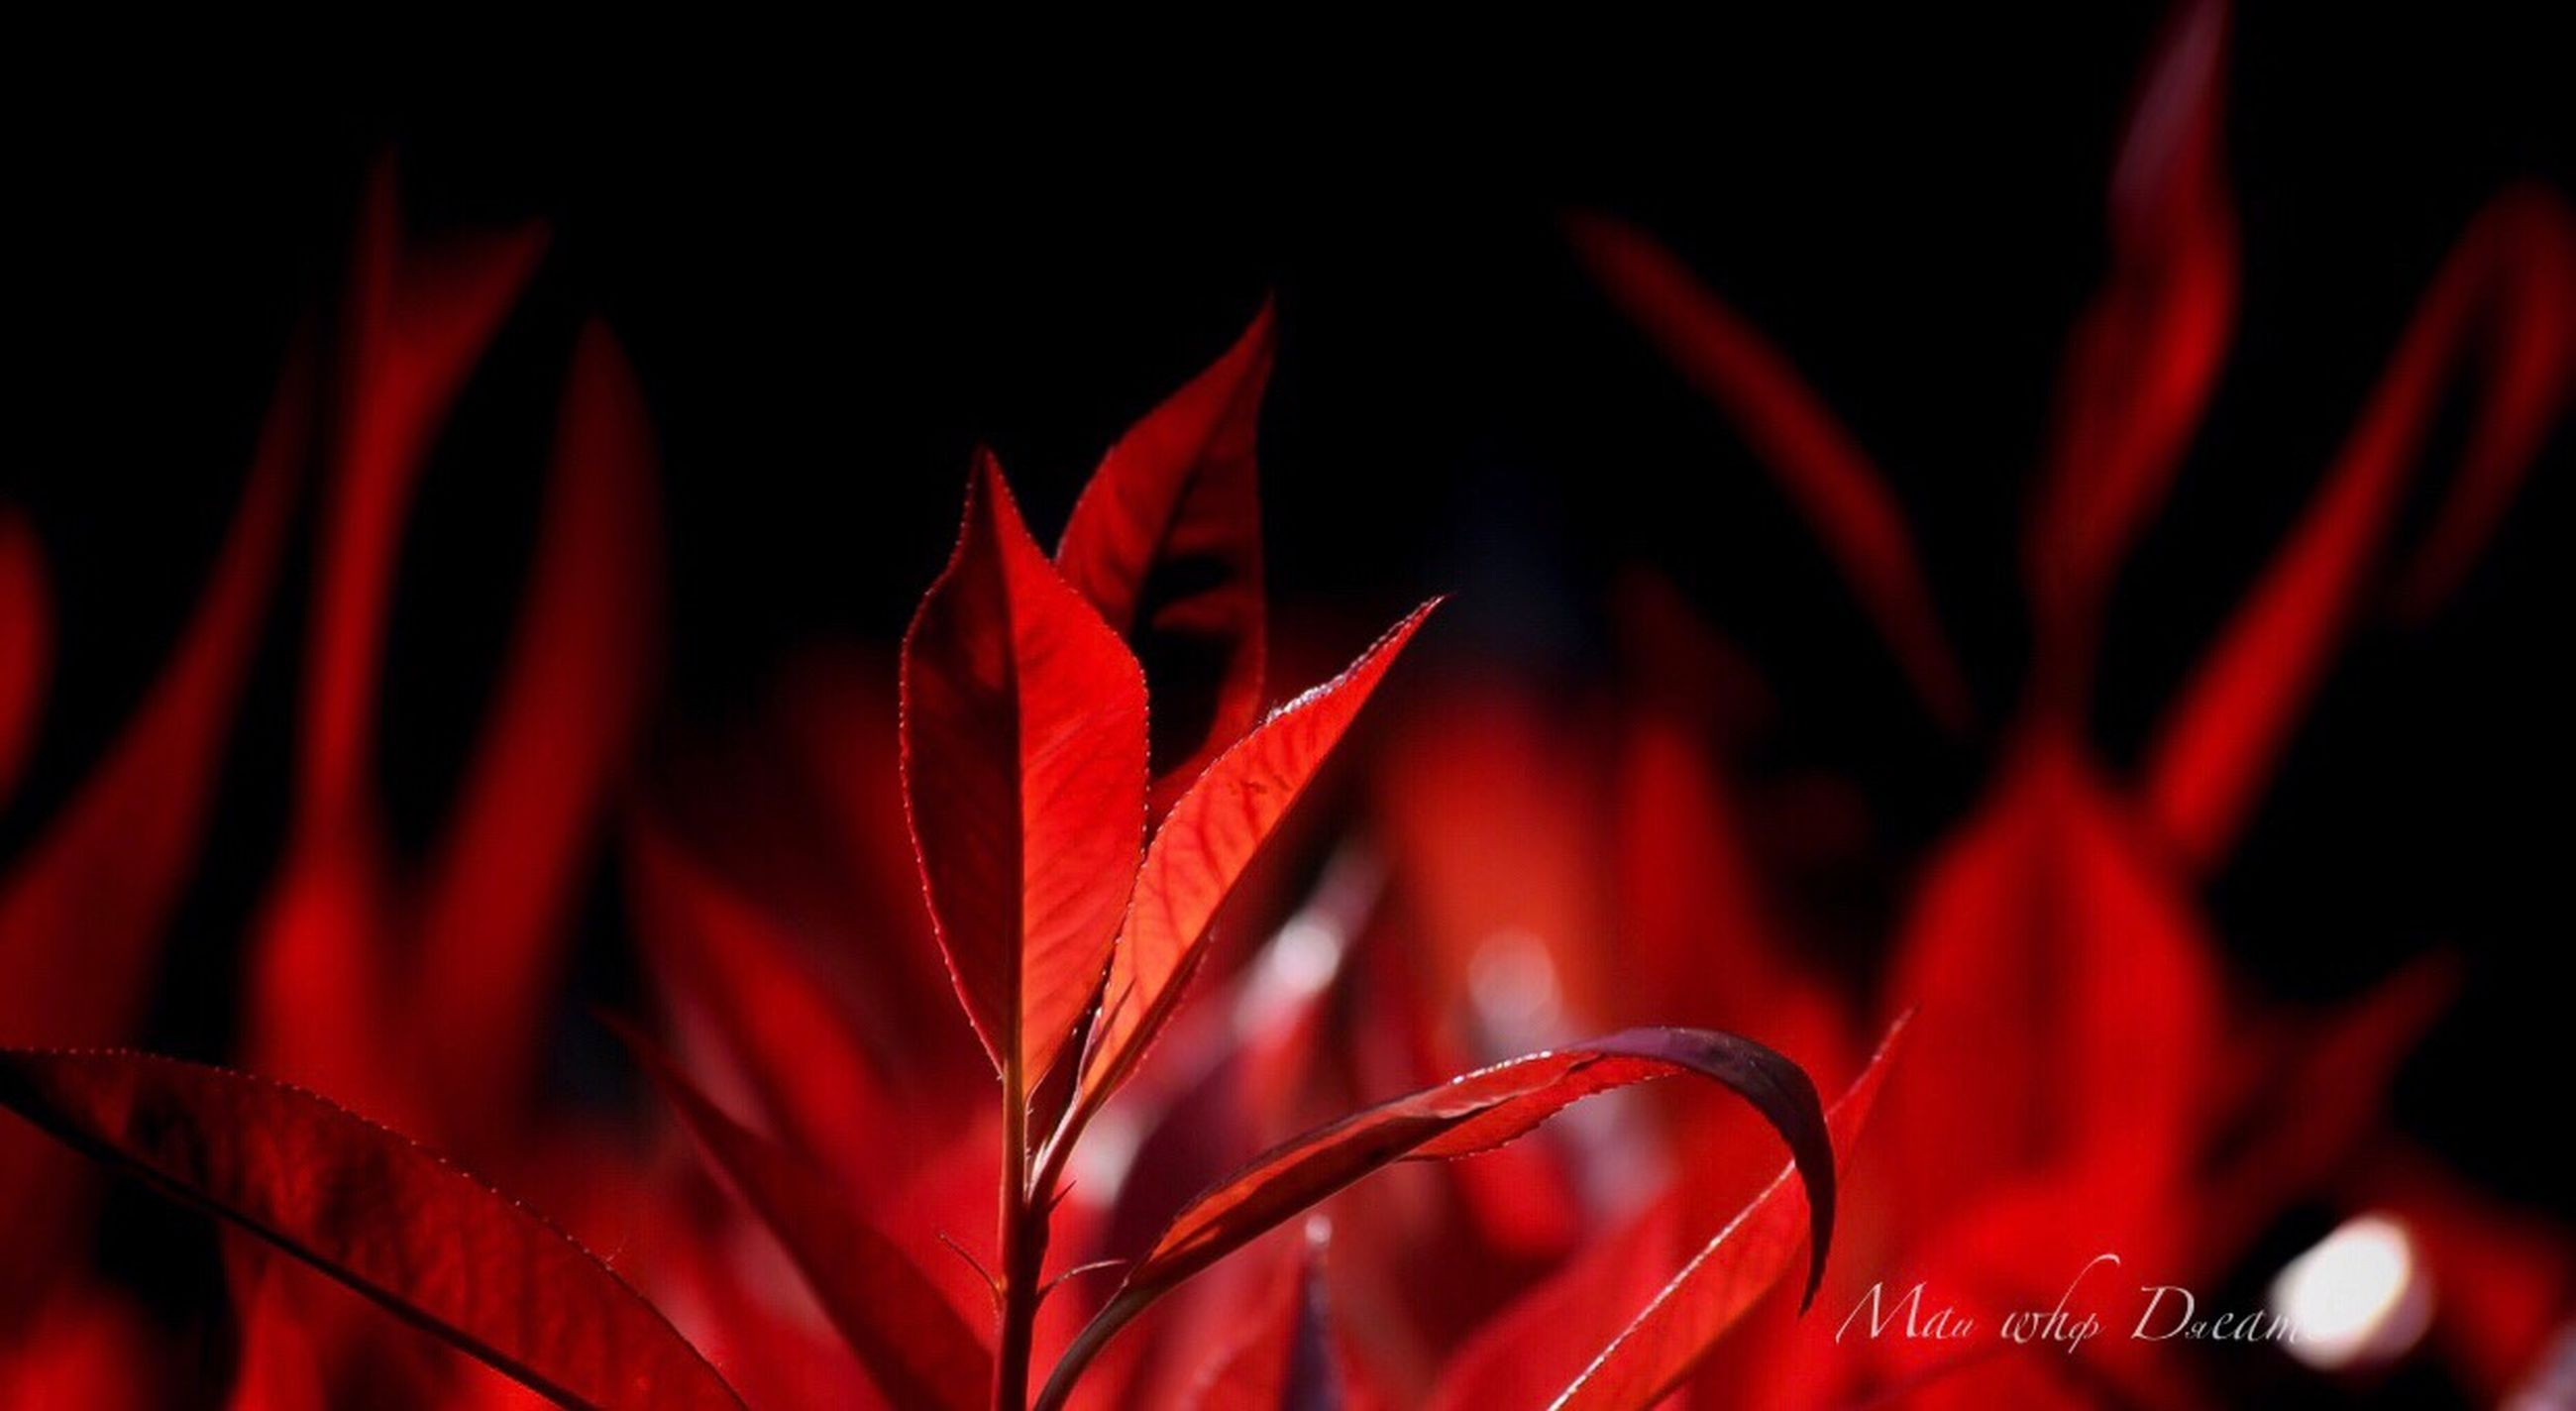 red, leaf, plant part, close-up, beauty in nature, plant, no people, nature, backgrounds, growth, petal, flower, focus on foreground, freshness, flowering plant, fragility, vulnerability, studio shot, outdoors, black background, flower head